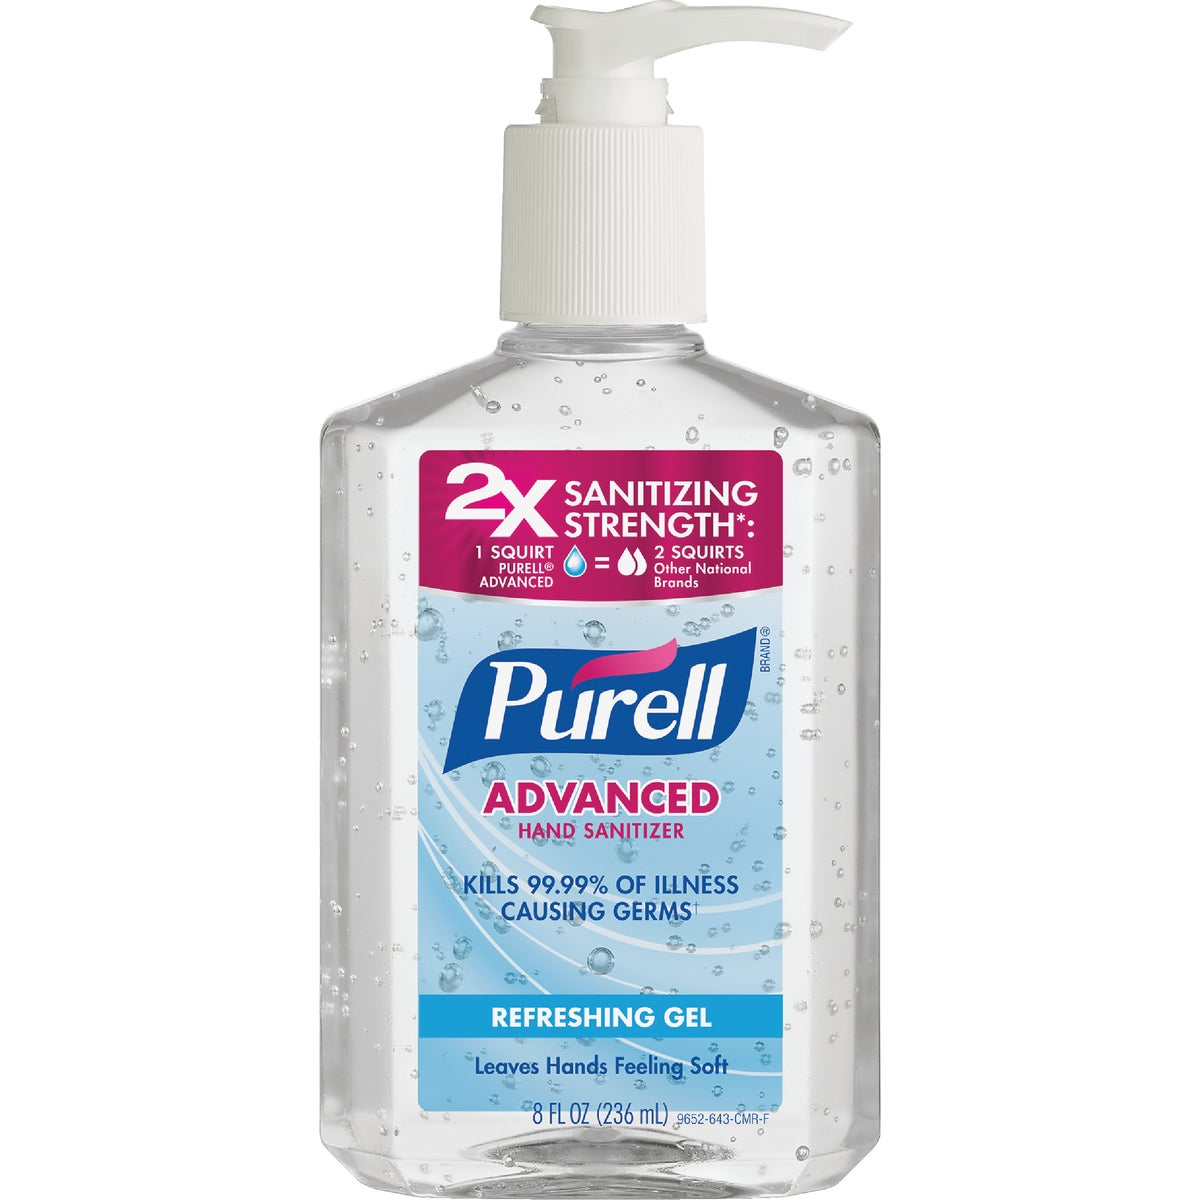 8OZ HAND SANITIZER